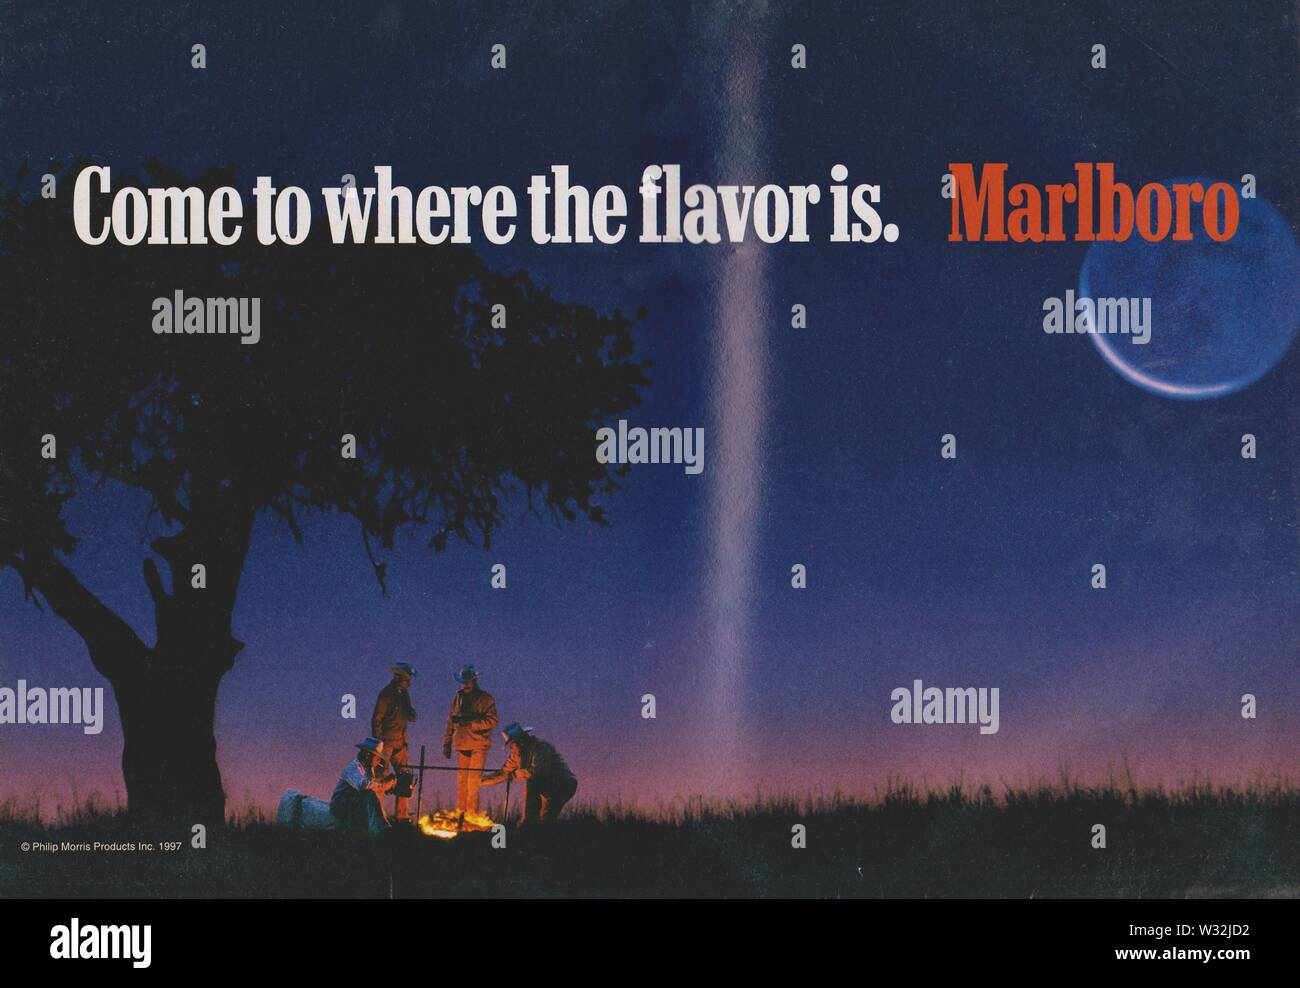 Marlboro Cigarettes Stock Photos & Marlboro Cigarettes Stock Images